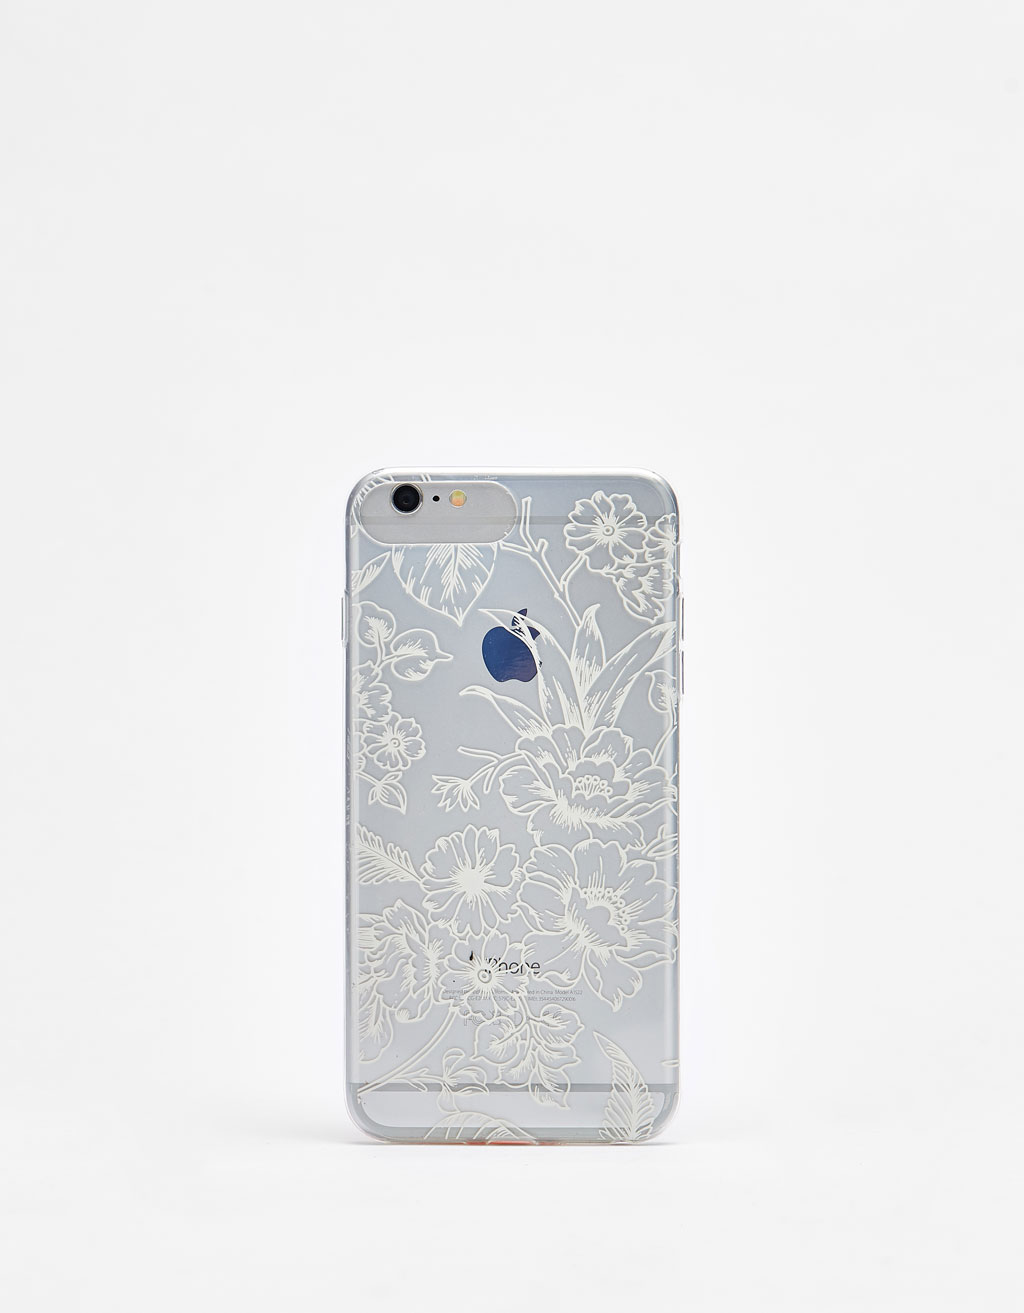 Floral iPhone 6 Plus/7 Plus/8 Plus case